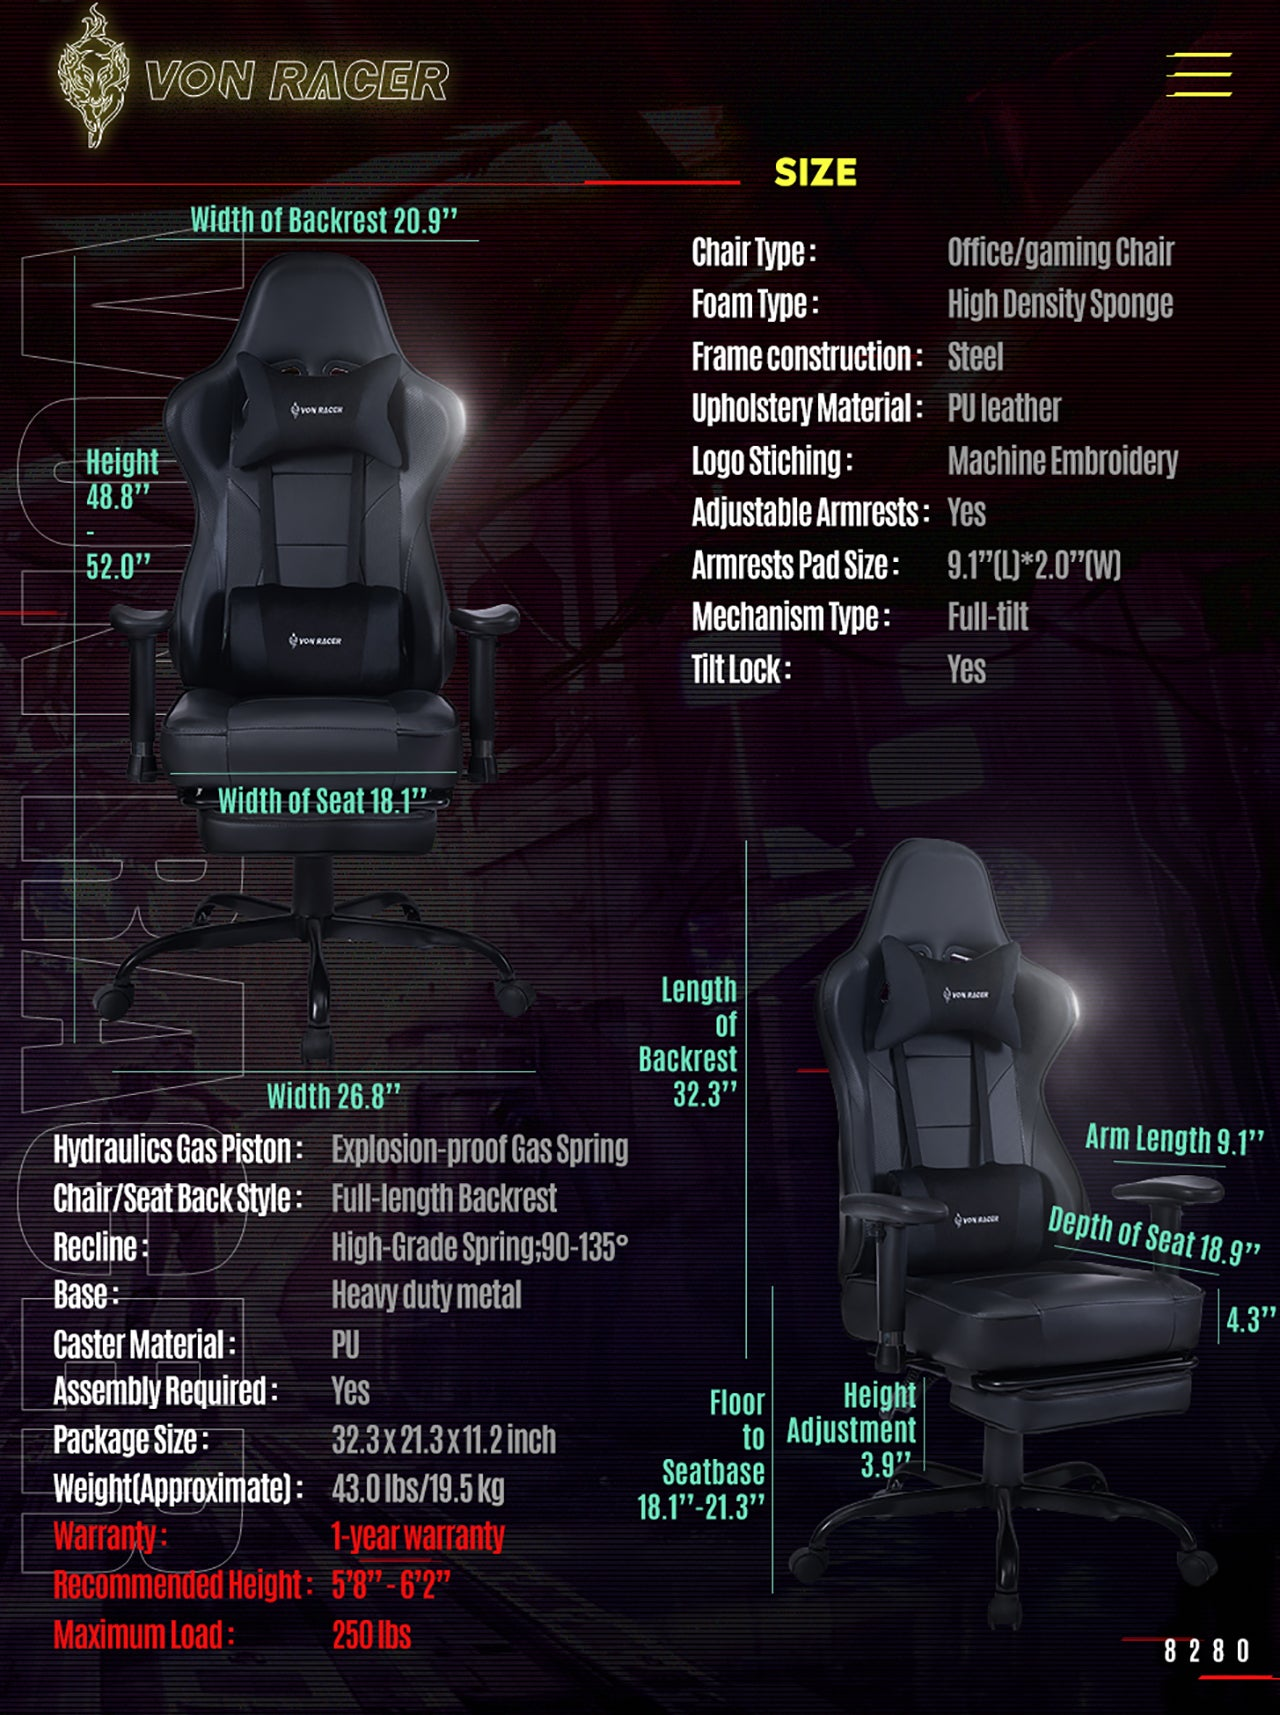 VON RACER ERGONOMIC GAMING CHAIR 8280 BLACK SPECIFICATION